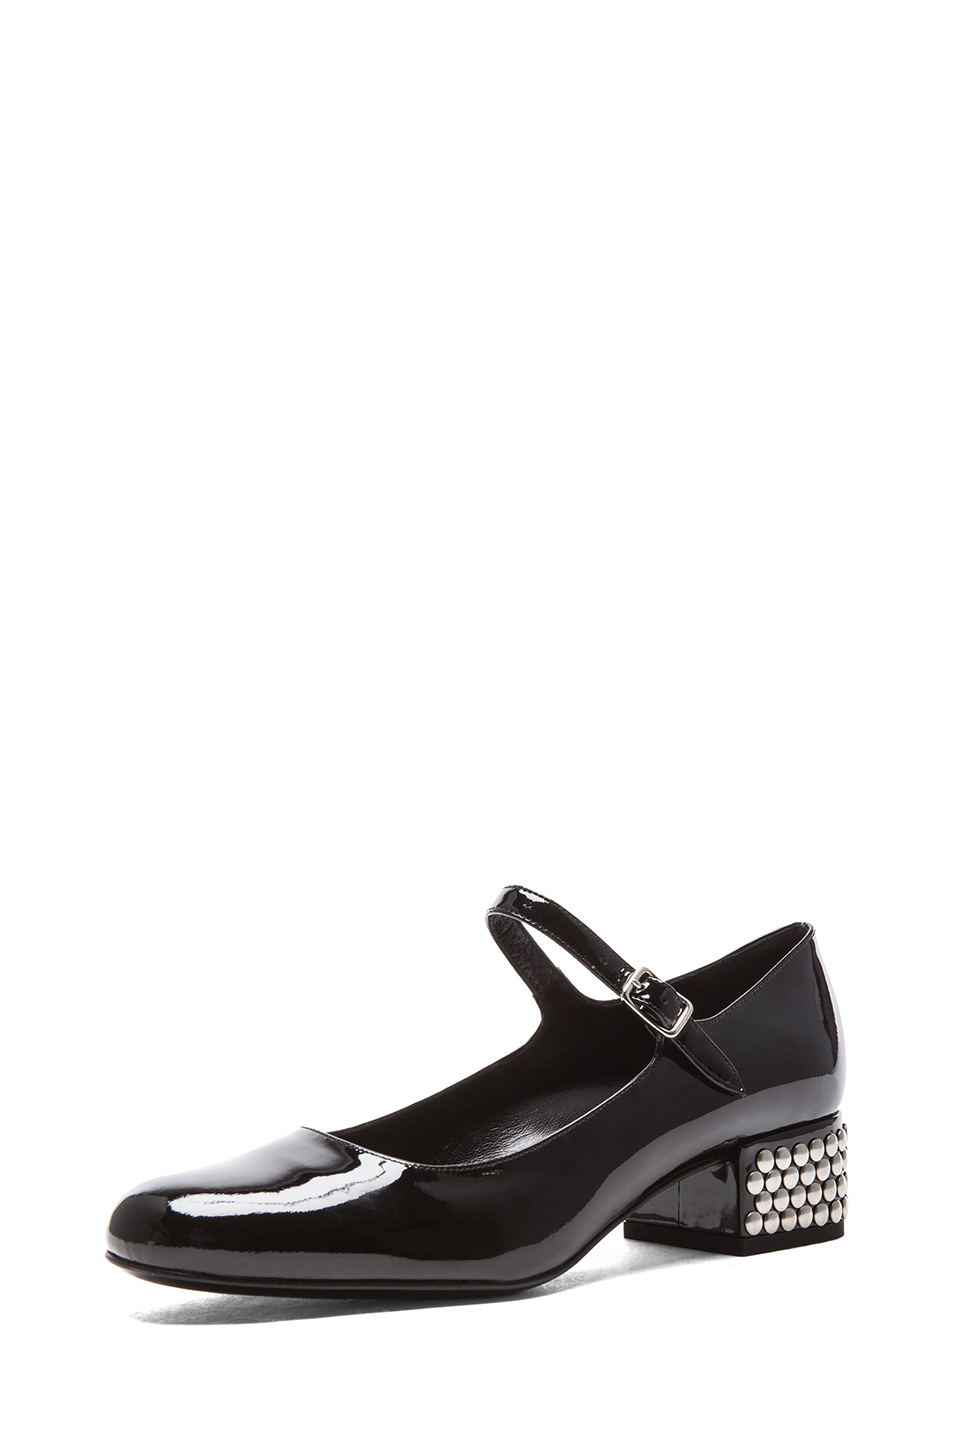 6d36d80f8af Saint Laurent Babies Mary Jane Flat with Studded Heel in Black - Lyst